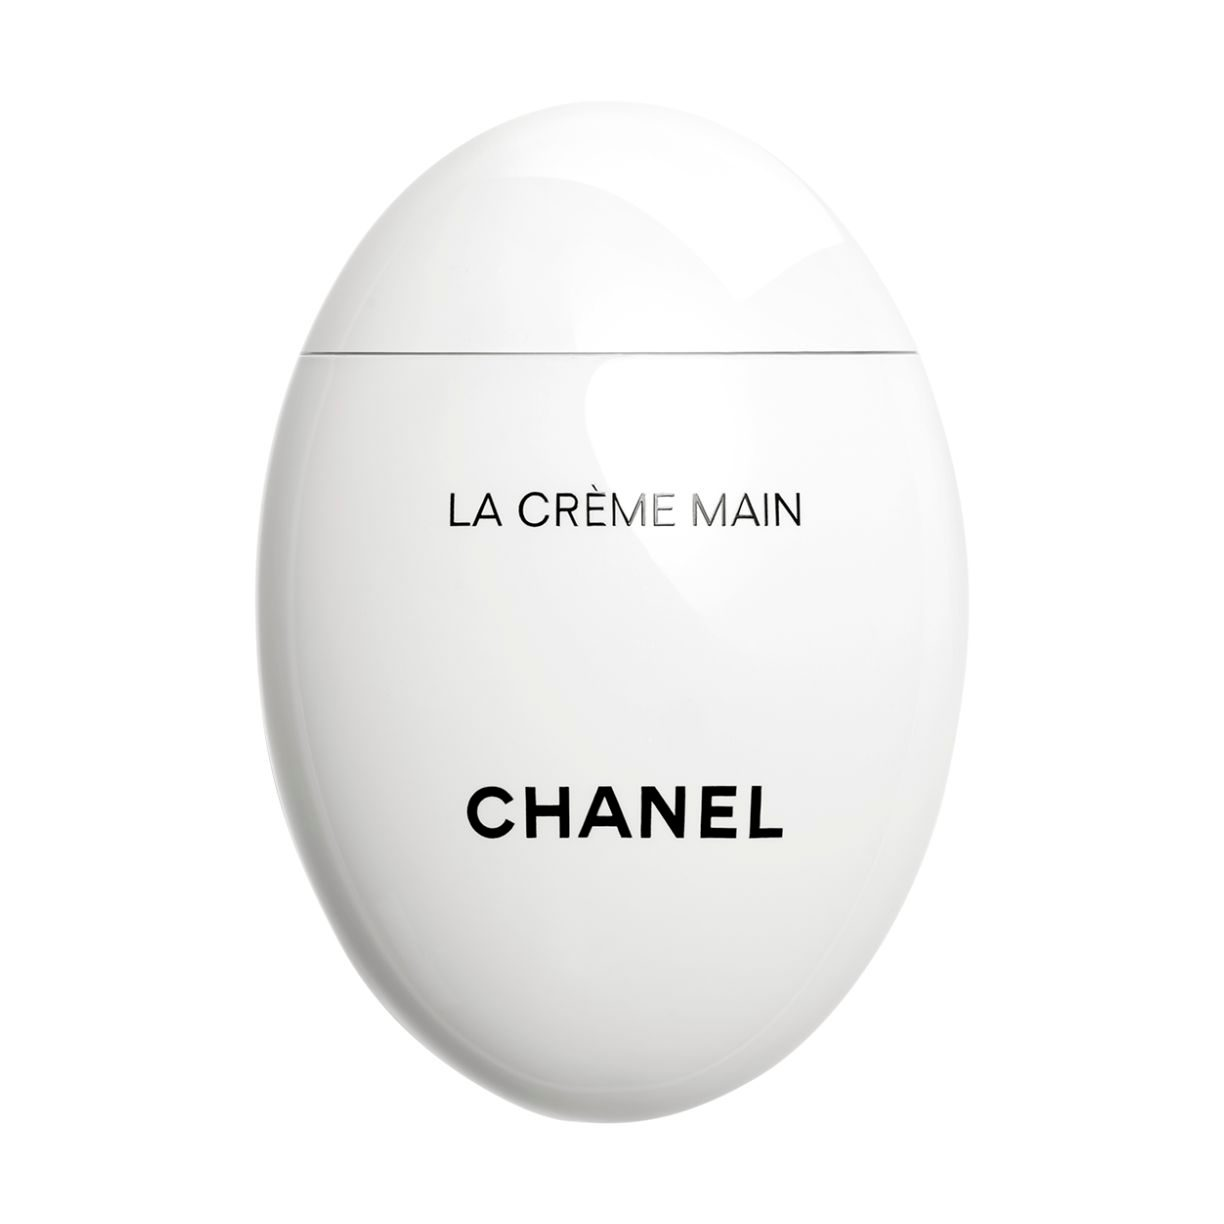 LA CRÈME MAIN SMOOTH-SOFTEN-BRIGHTEN 50ml